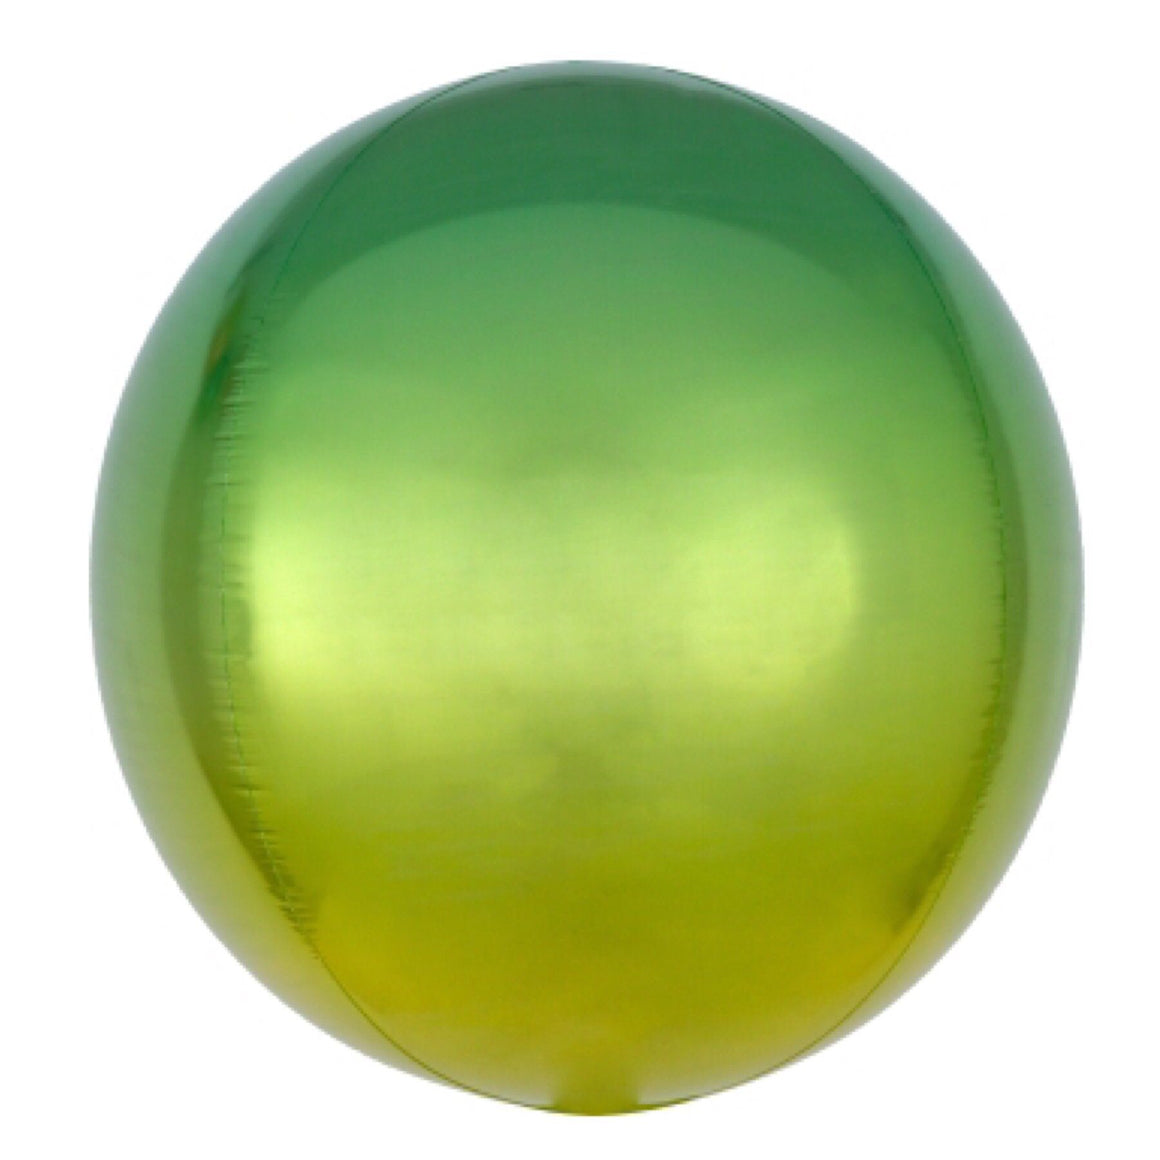 BALLOON BAR - ORBZ OMBRE GREEN YELLOW, Balloons, Anagram - Bon + Co. Party Studio